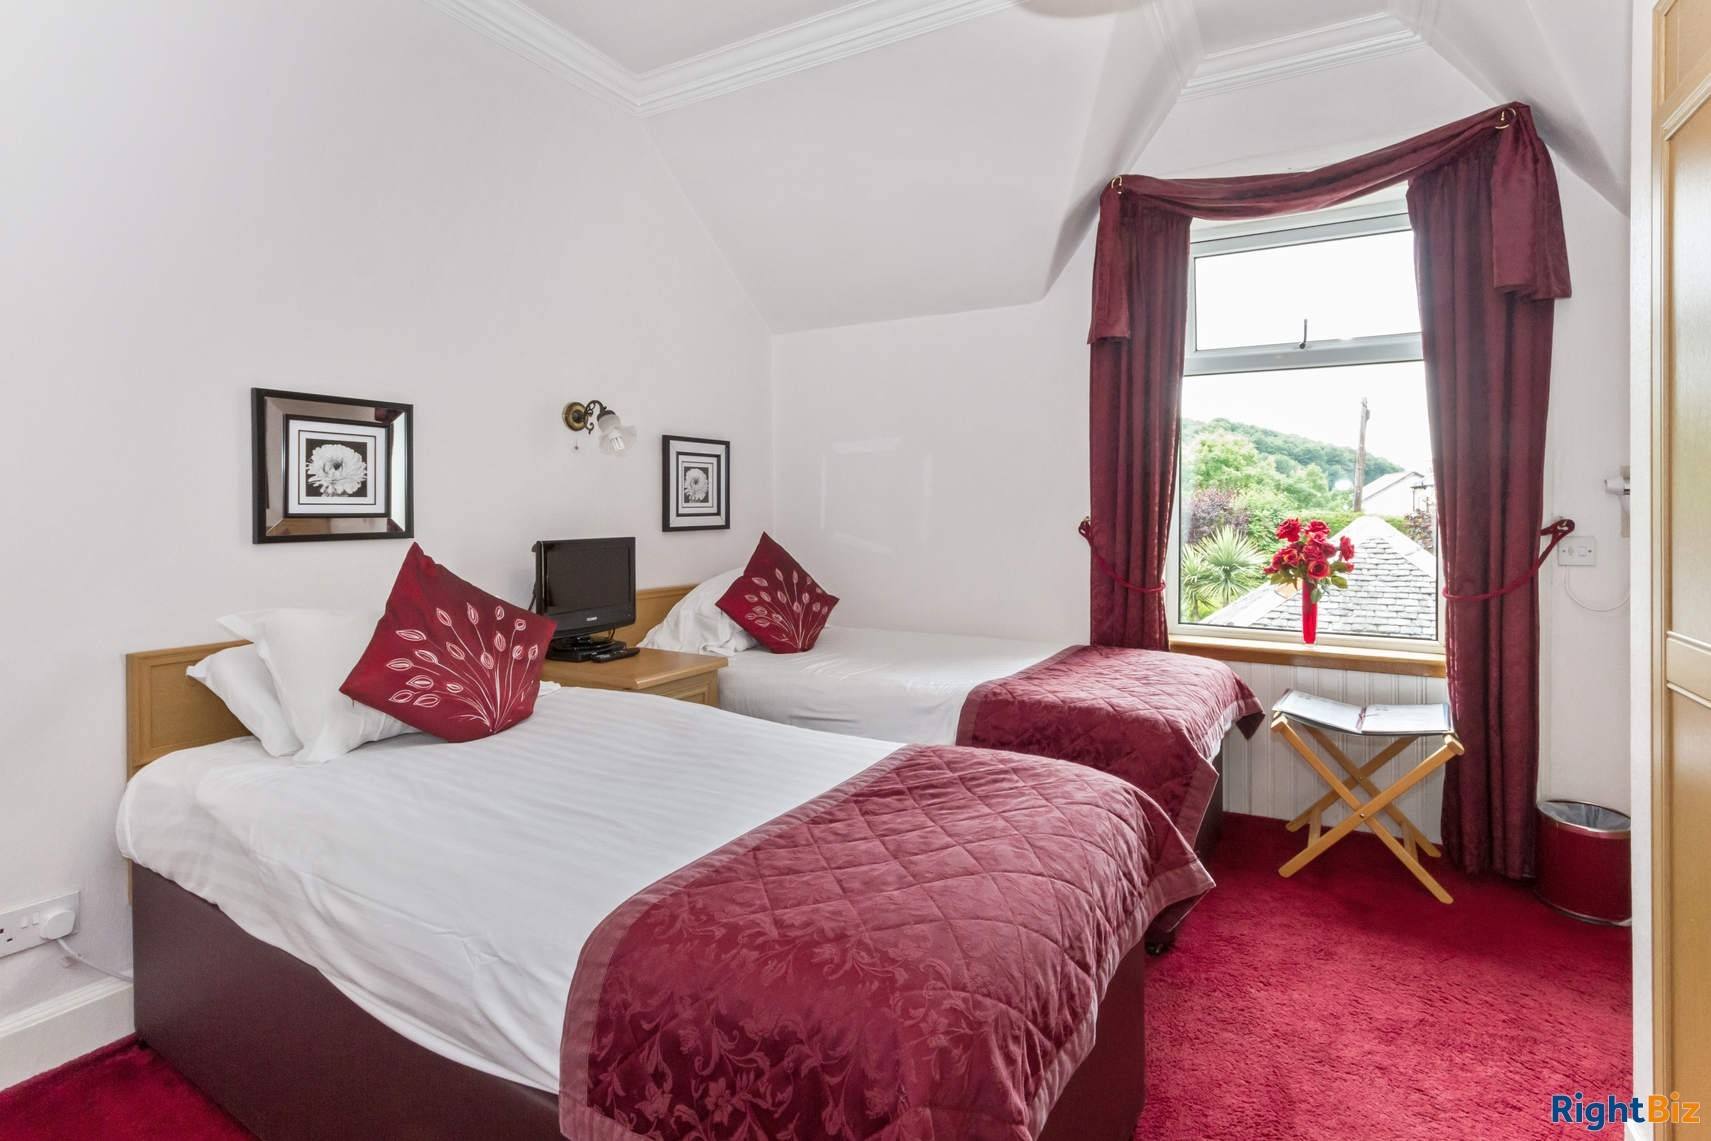 A unique life-changing opportunity to purchase a successful, long-established B&B in West Scotland - Image 15